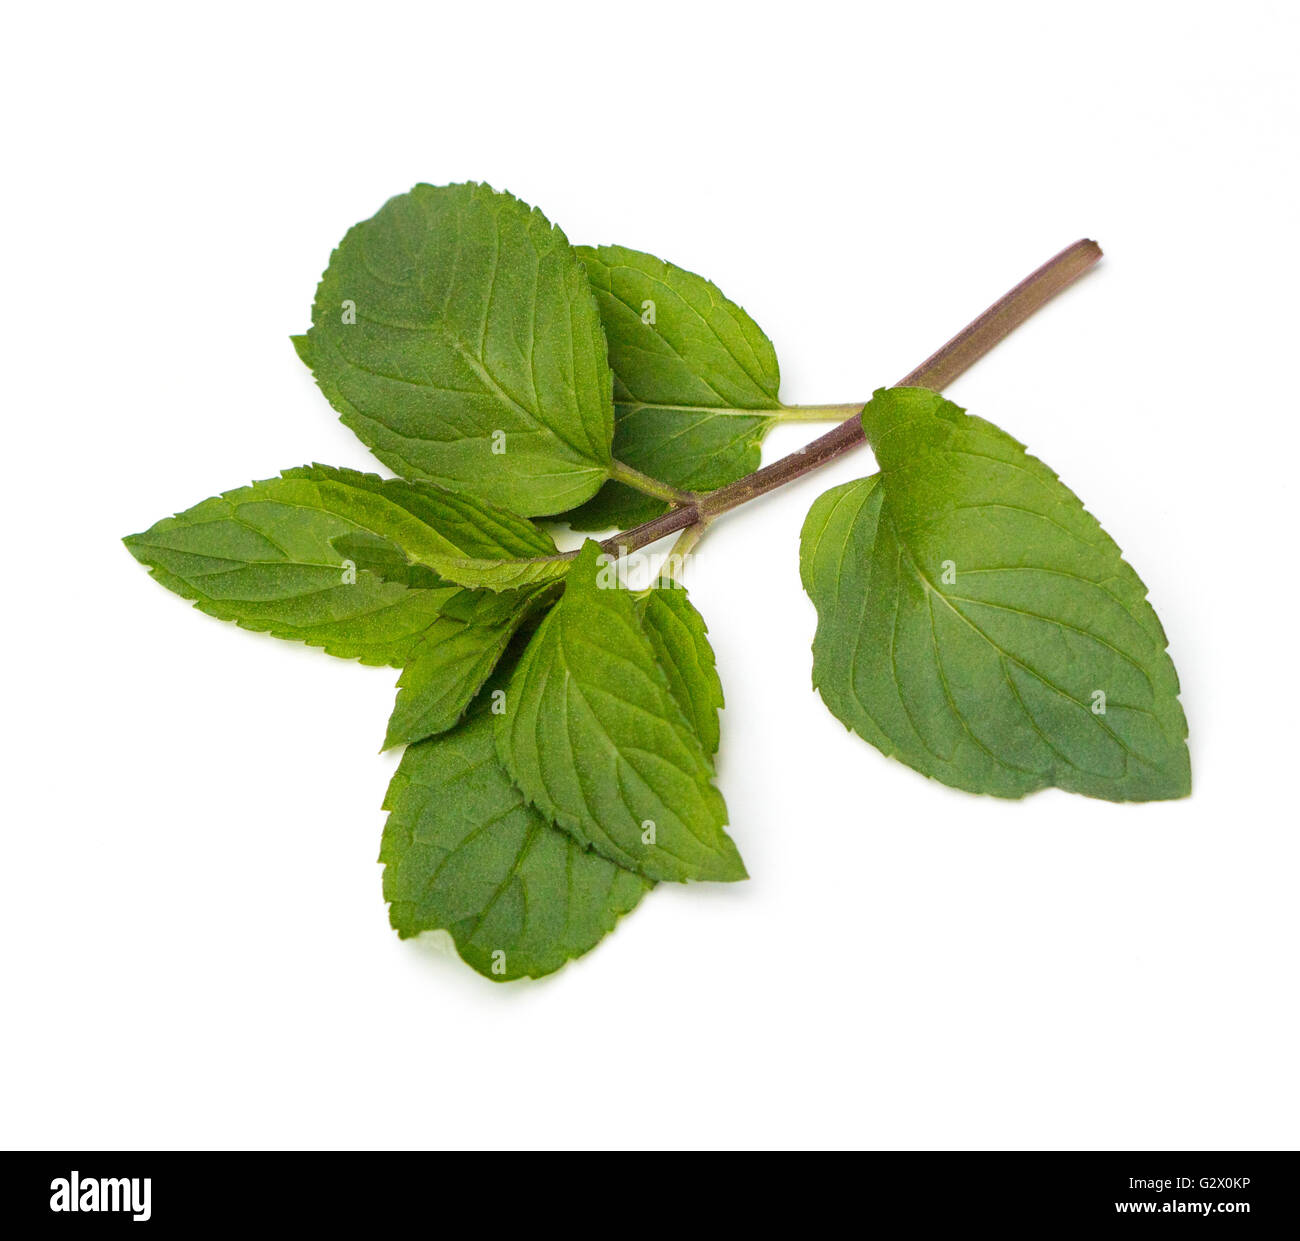 Fresh Chocolate Mint (Mentha piperita) leaves on a white background - Stock Image